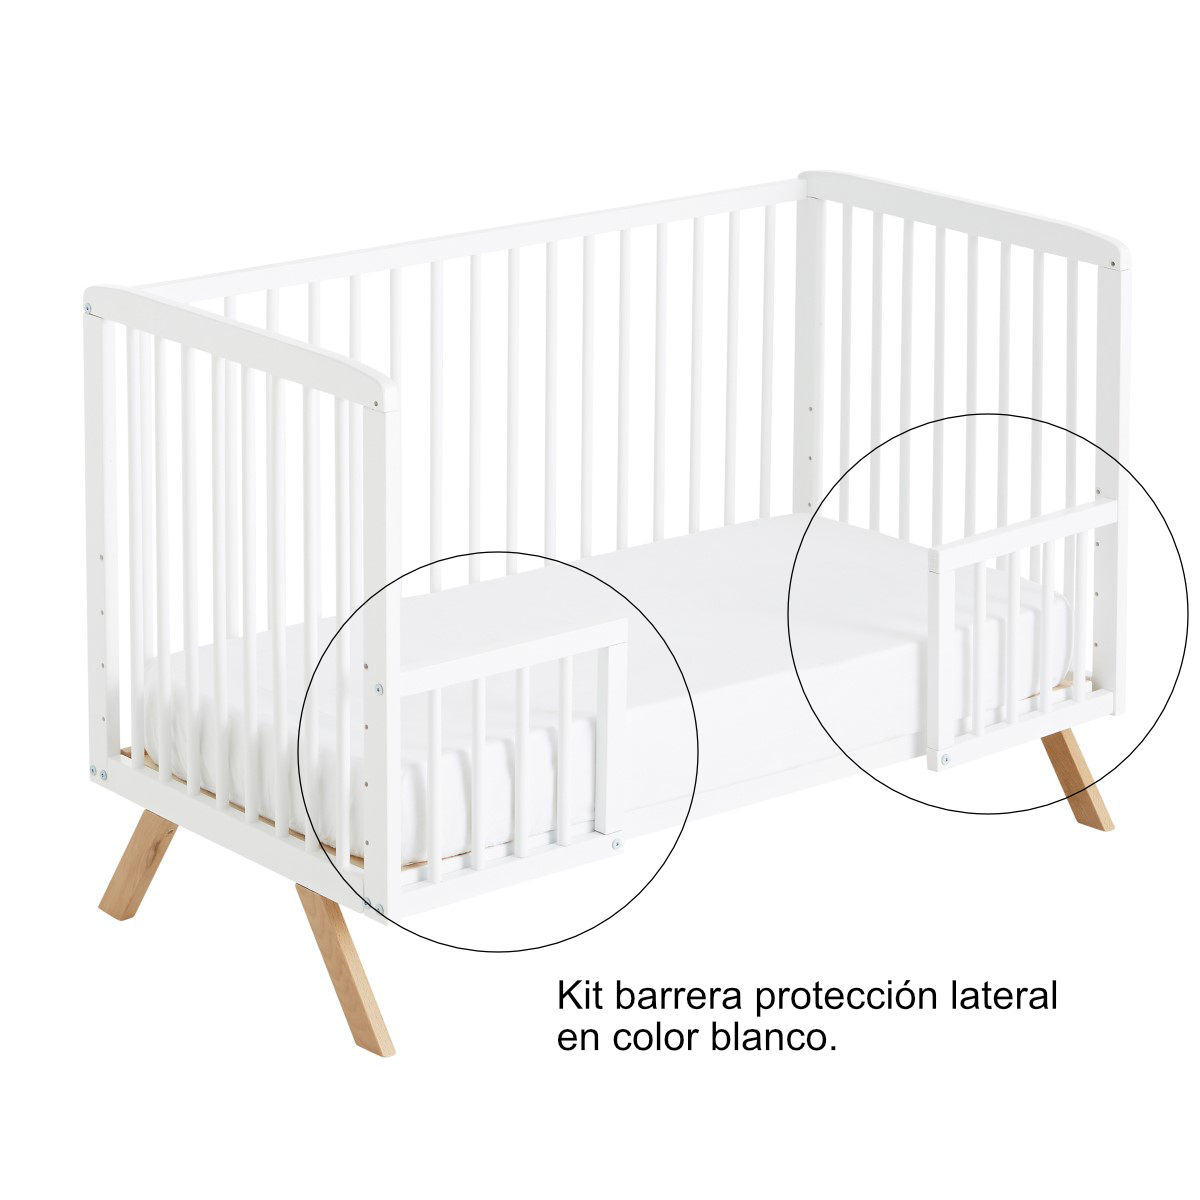 95405-KIT BARRERA PROTECCION CUNA BLANCA(1-0)-0